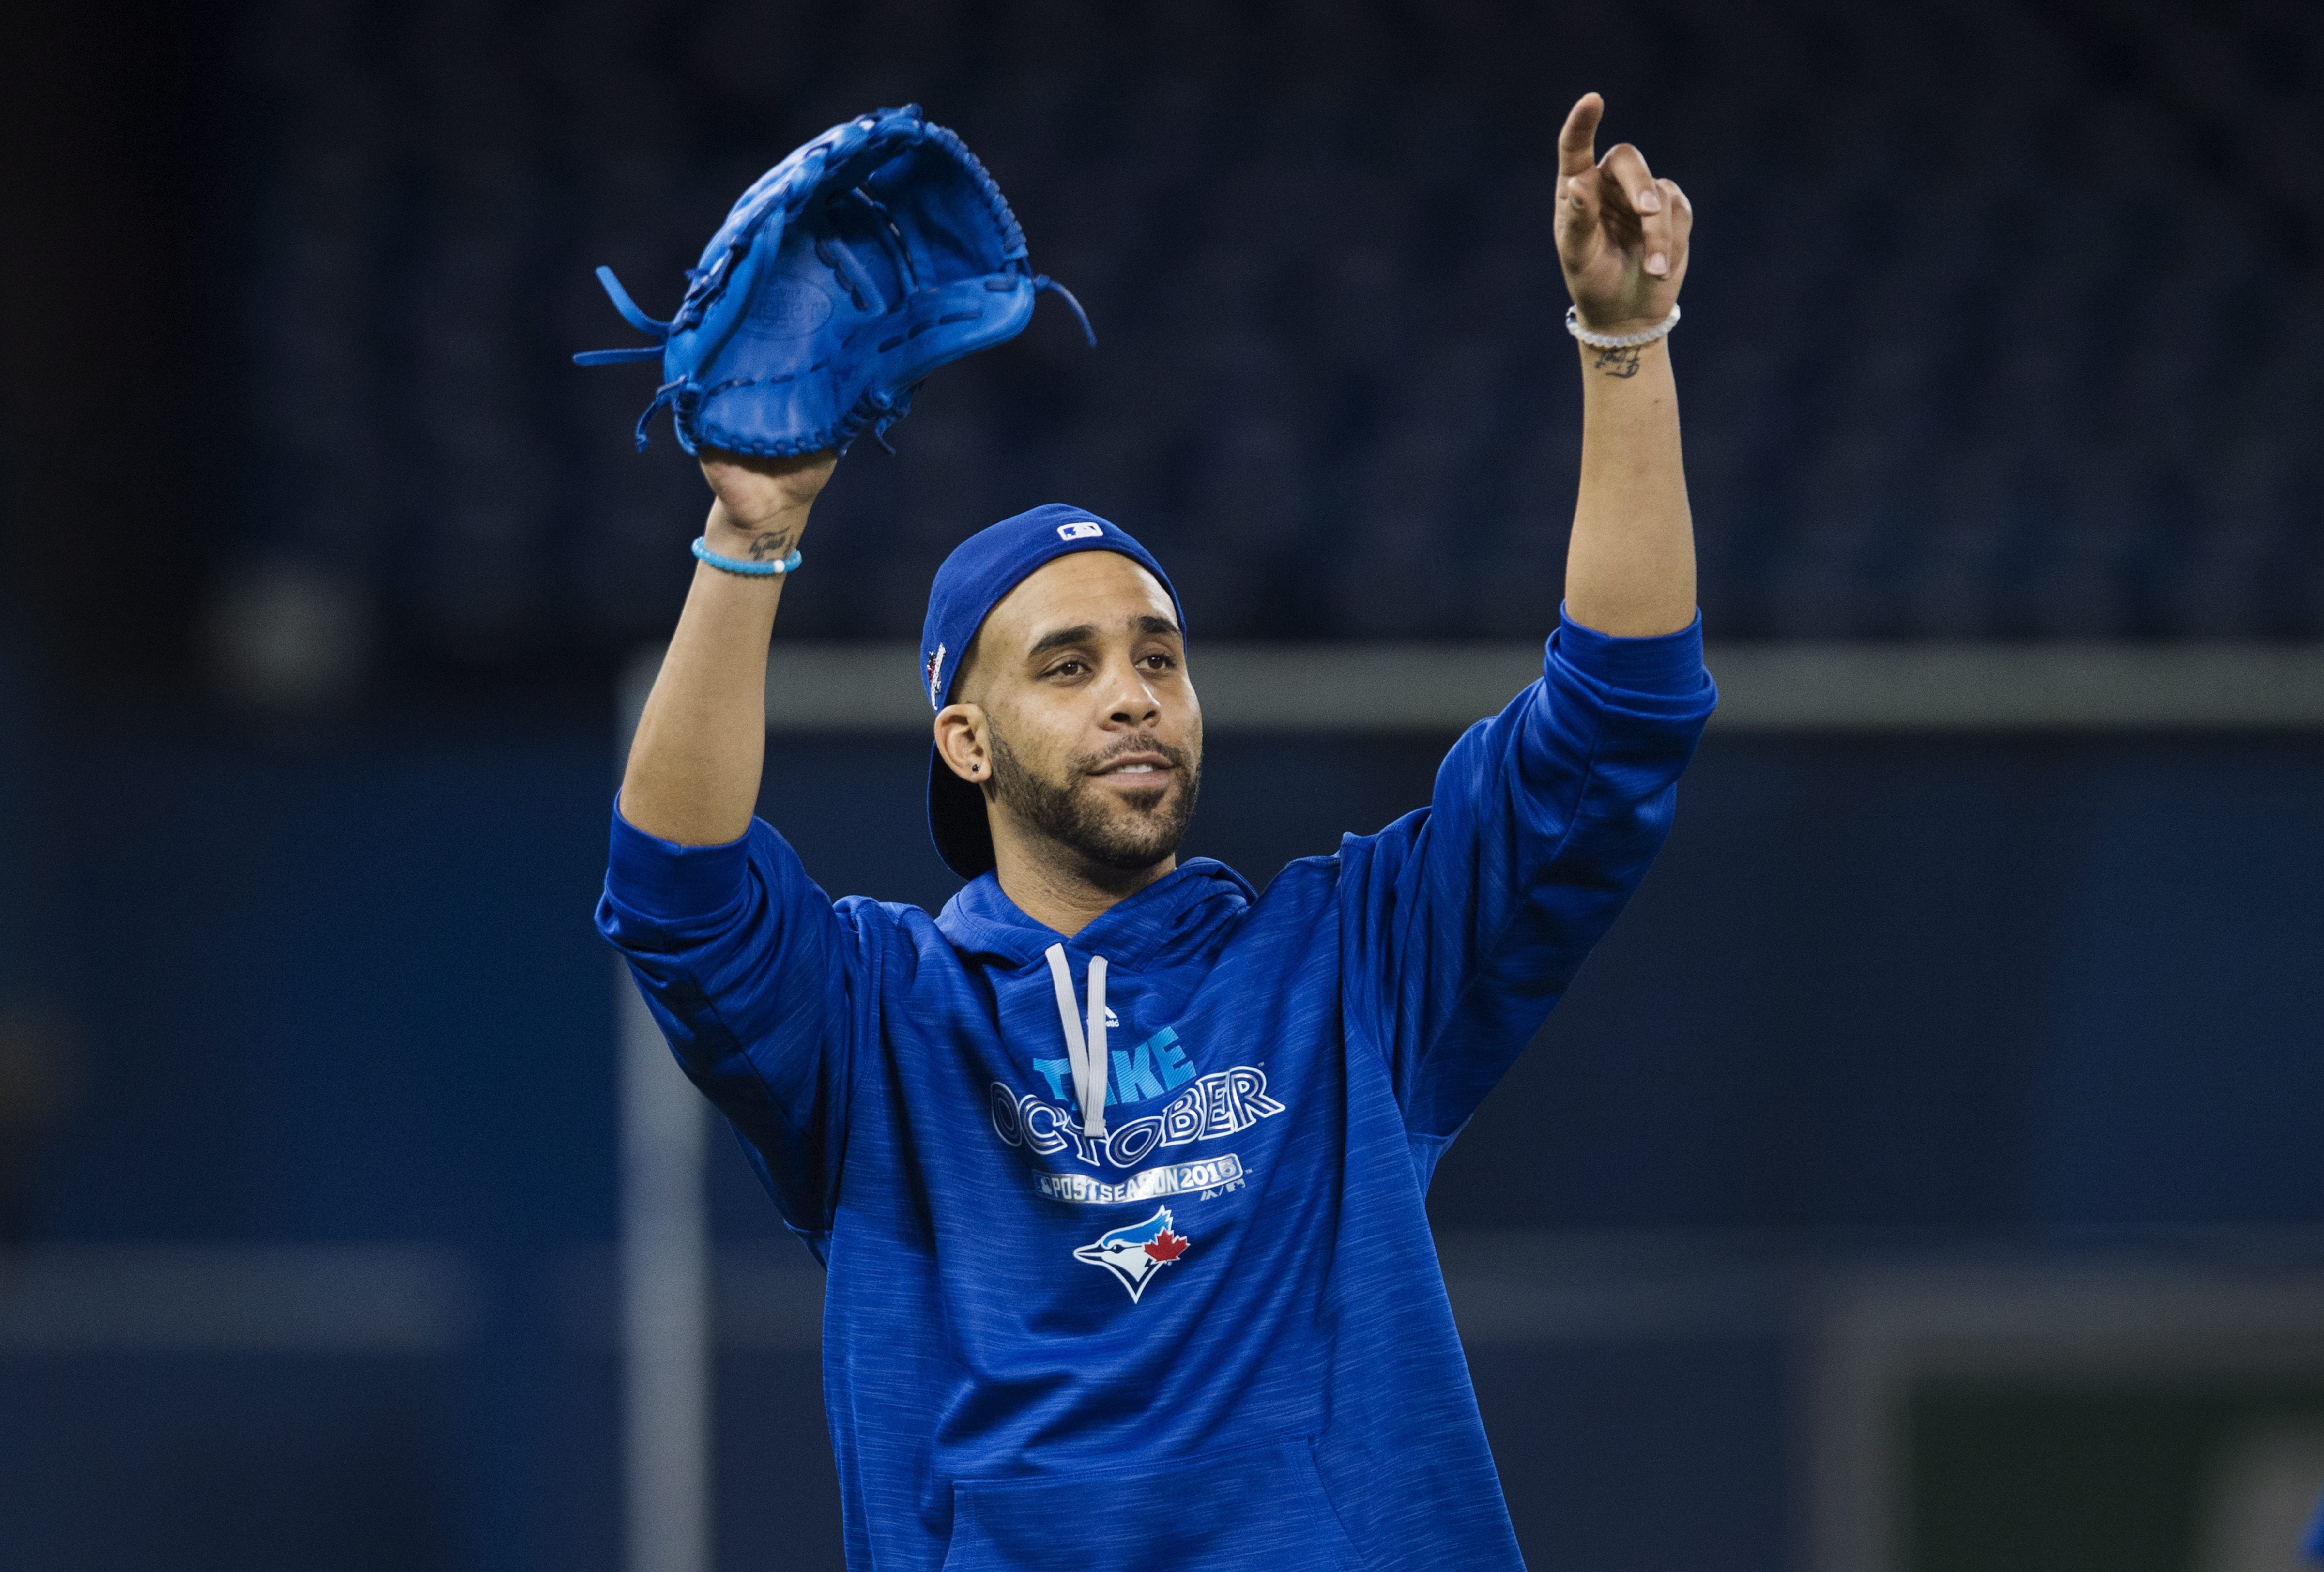 Toronto Blue Jays starting pitcher David Price gestures during a team workout at the Rogers Centre in Toronto on Wednesday, Oct. 7, 2015. The Blue Jays start the American League Divisional Series against the Texas Rangers in Toronto on Thursday. (Darren C